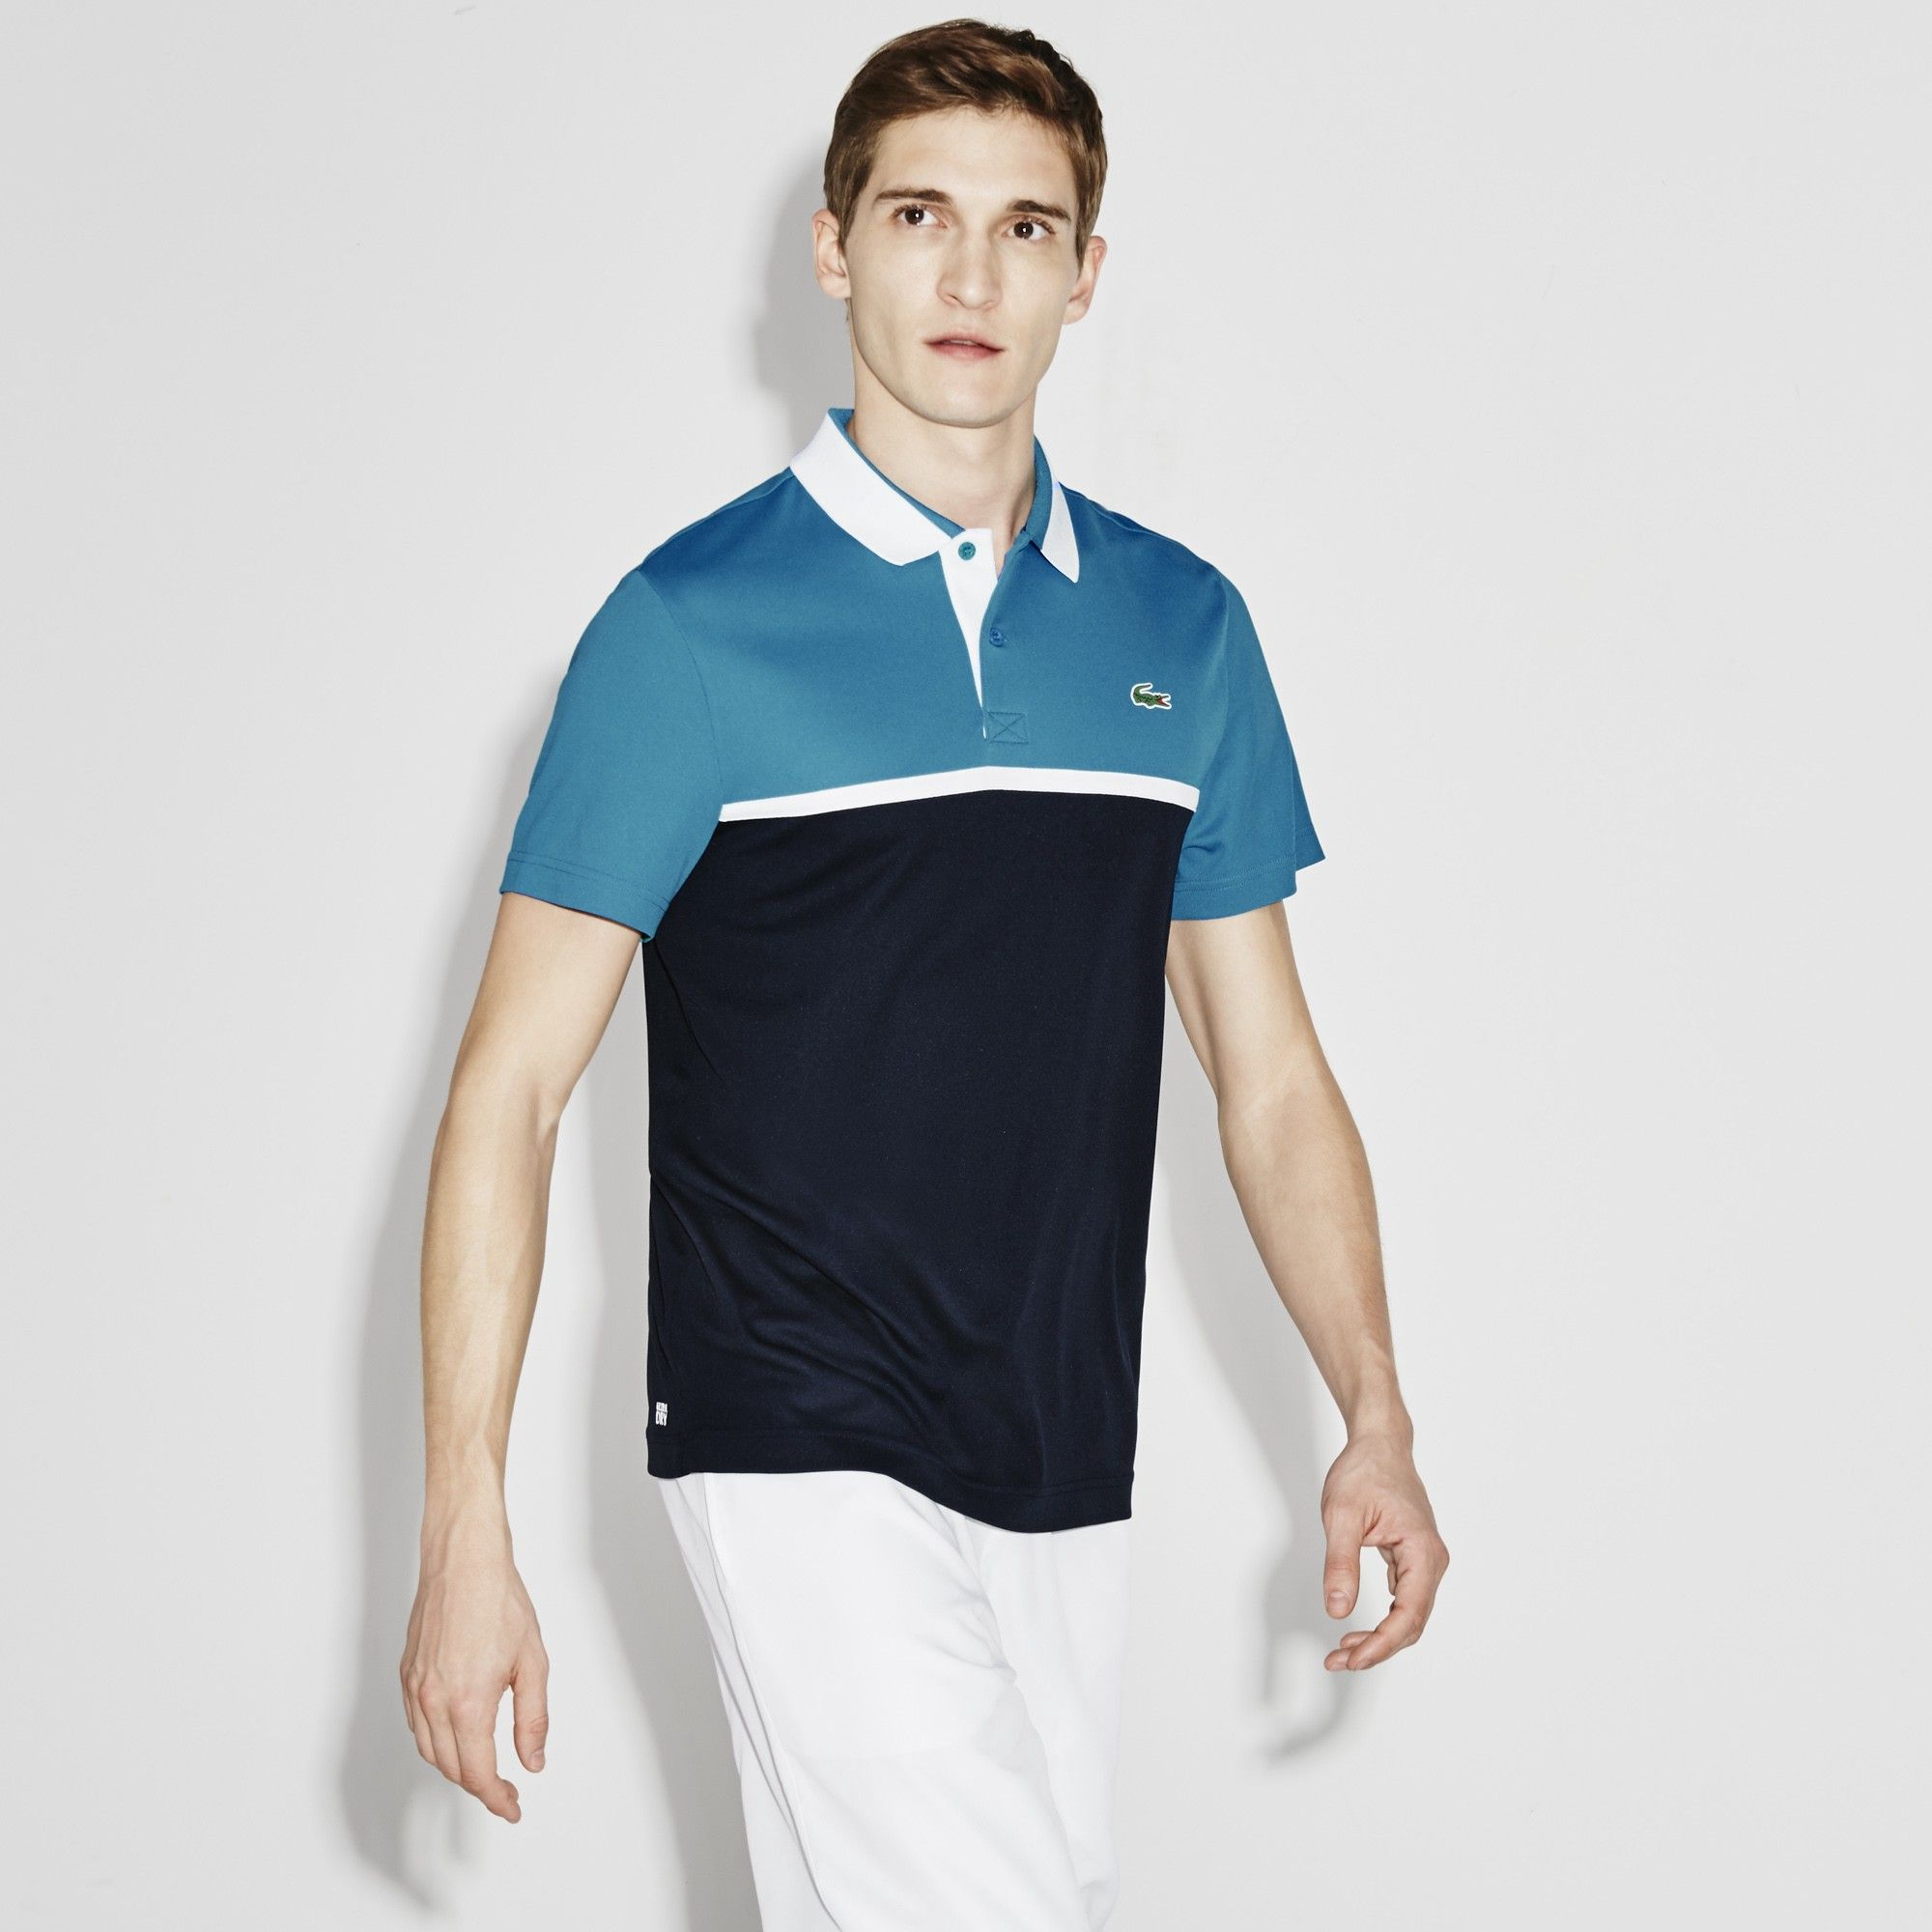 5dd8502d3 LACOSTE Men s SPORT Ultra Dry Resistant Piqué Tennis Polo Shirt -  oceanie navy blue-white.  lacoste  cloth